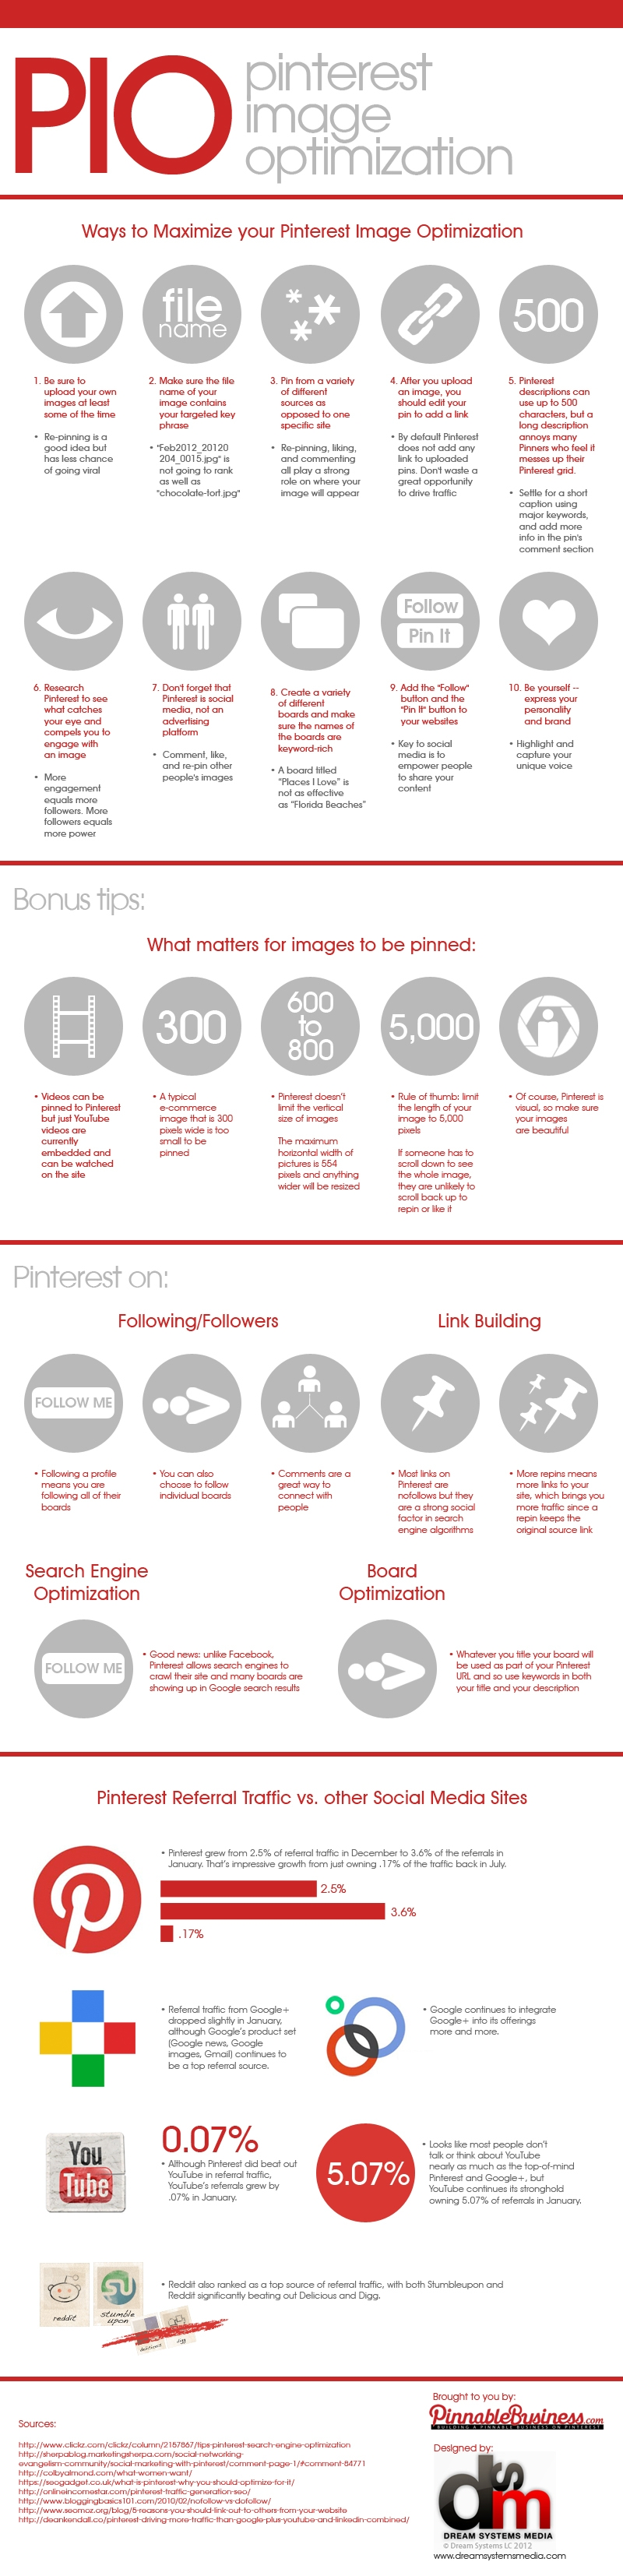 Pinterest Image Optimization1 23 Pinterest Image Optimization and SEO Pinning Tips